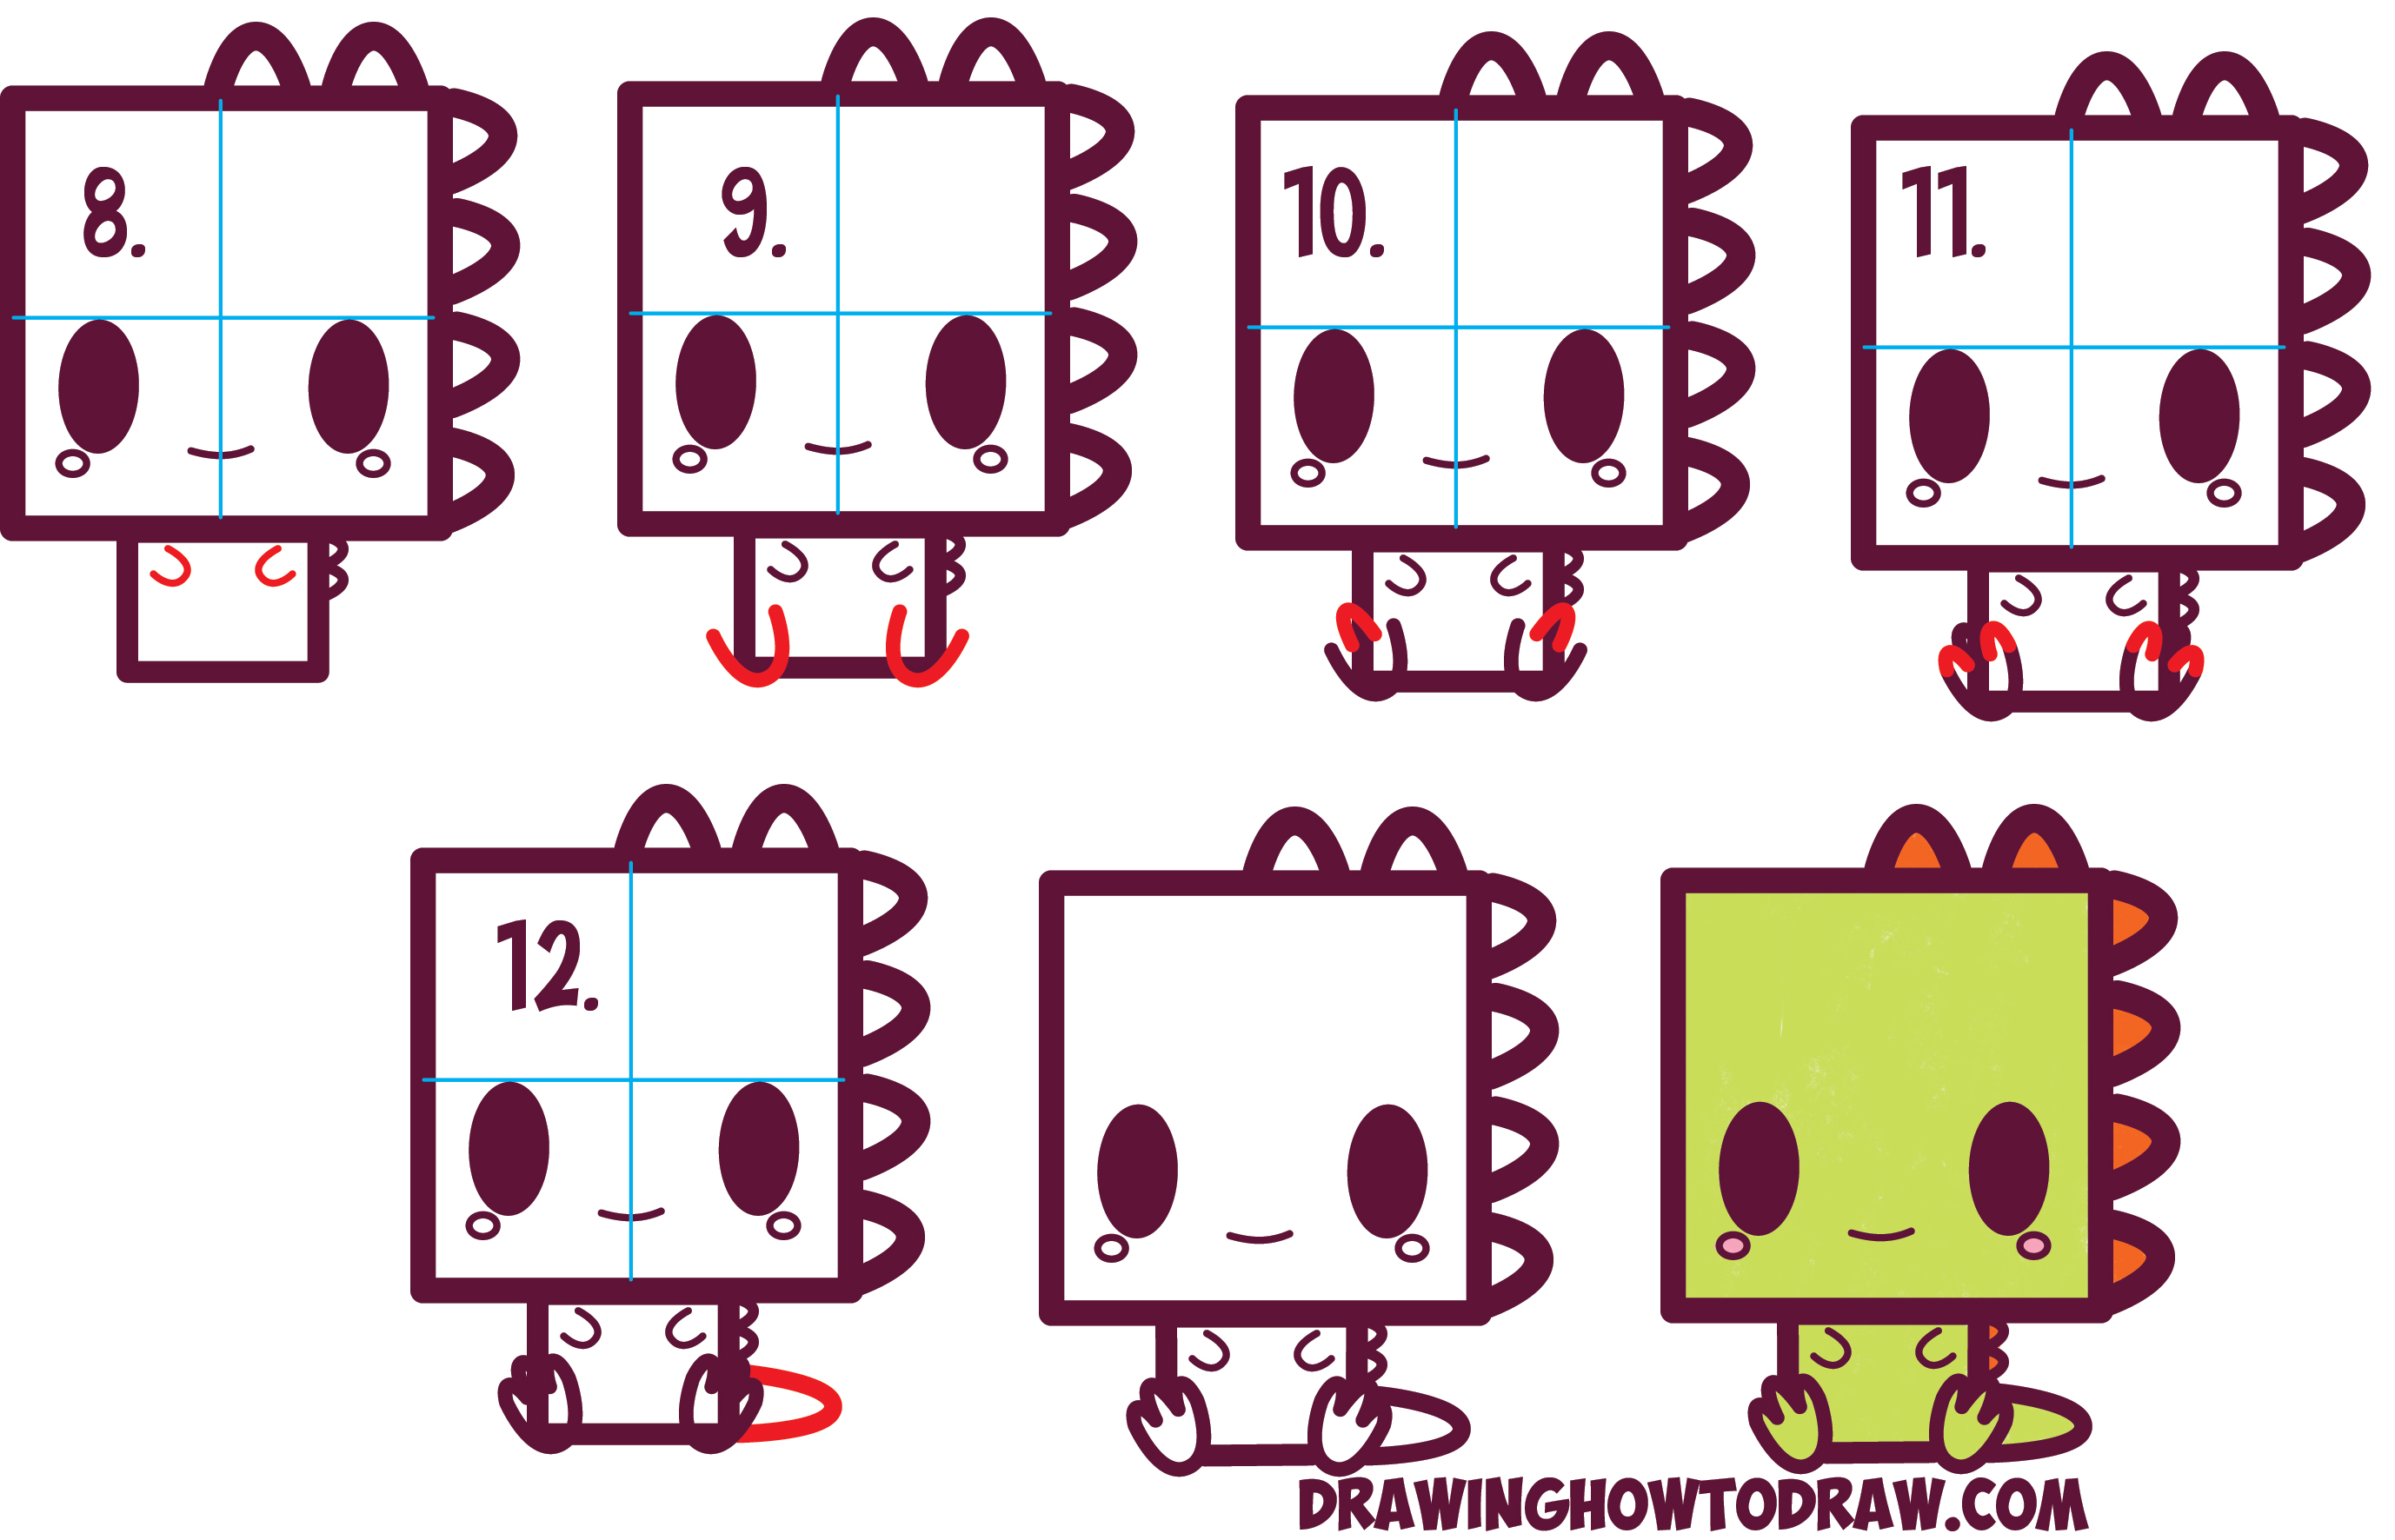 2755x1772 How To Draw Cute Kawaii Cartoon Baby Dinosaur From Squares